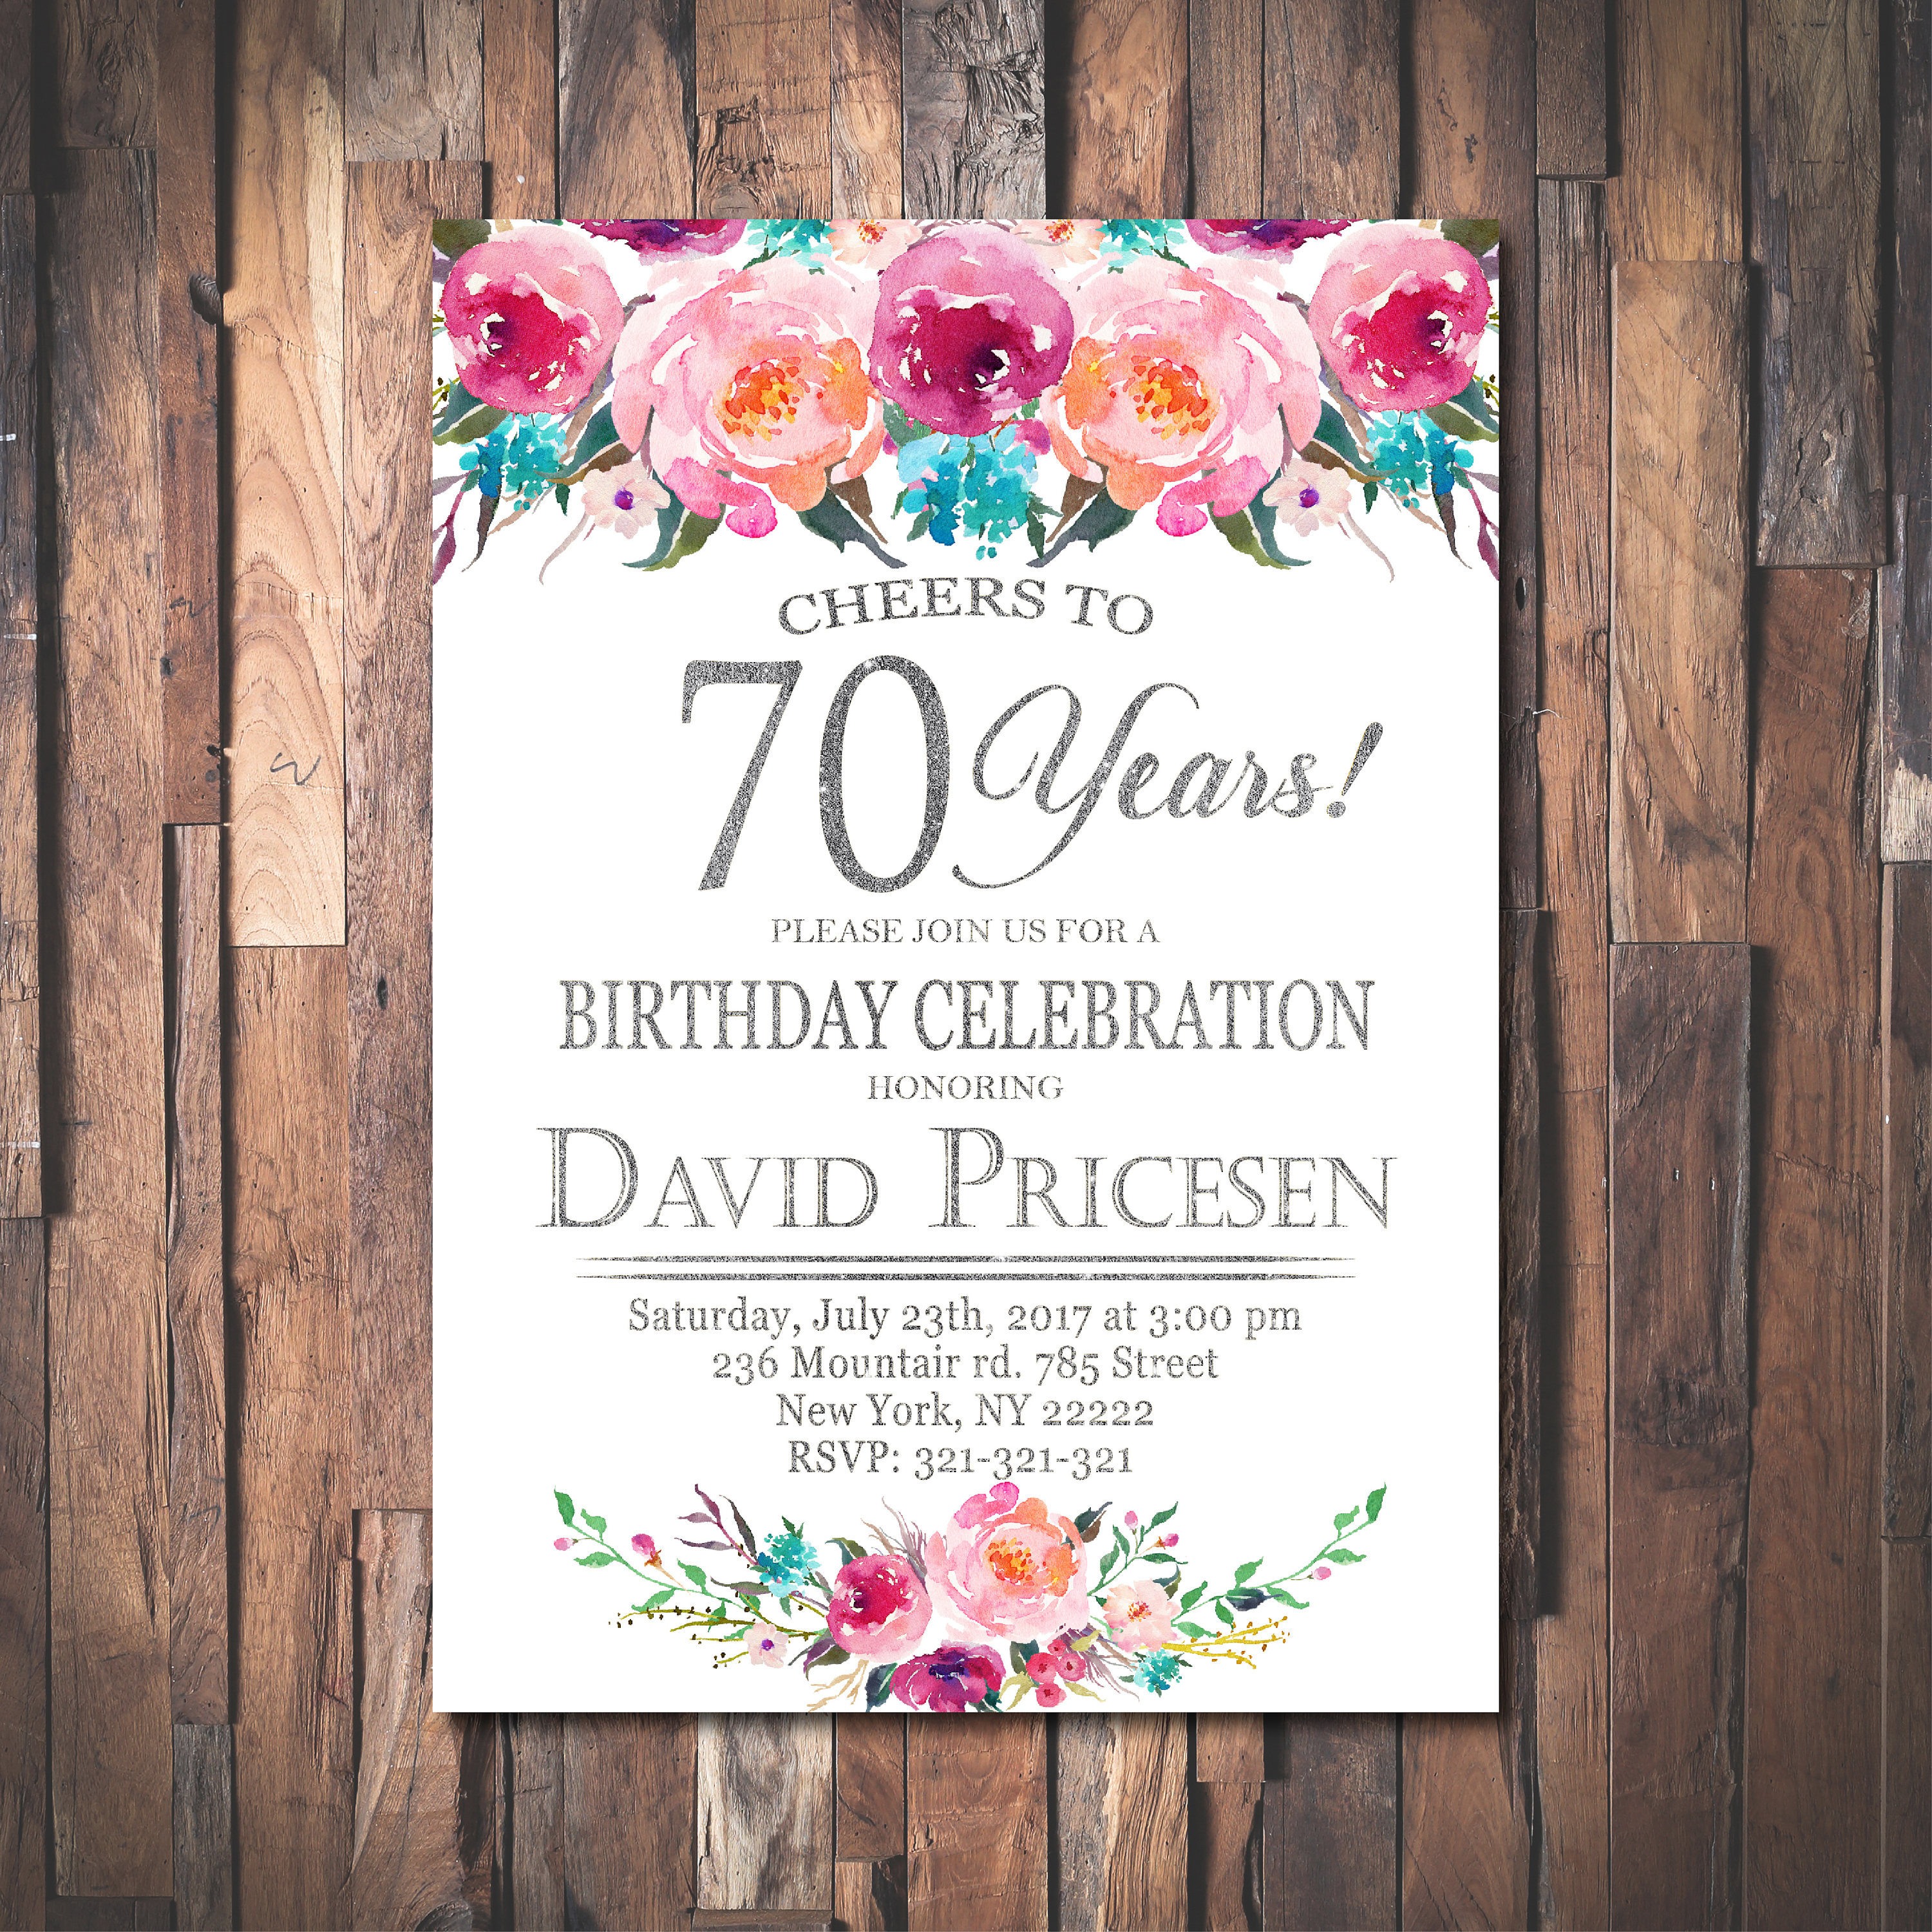 Floral 70th Birthday Invitation,Cheers to 70 years,70th Birthday ...